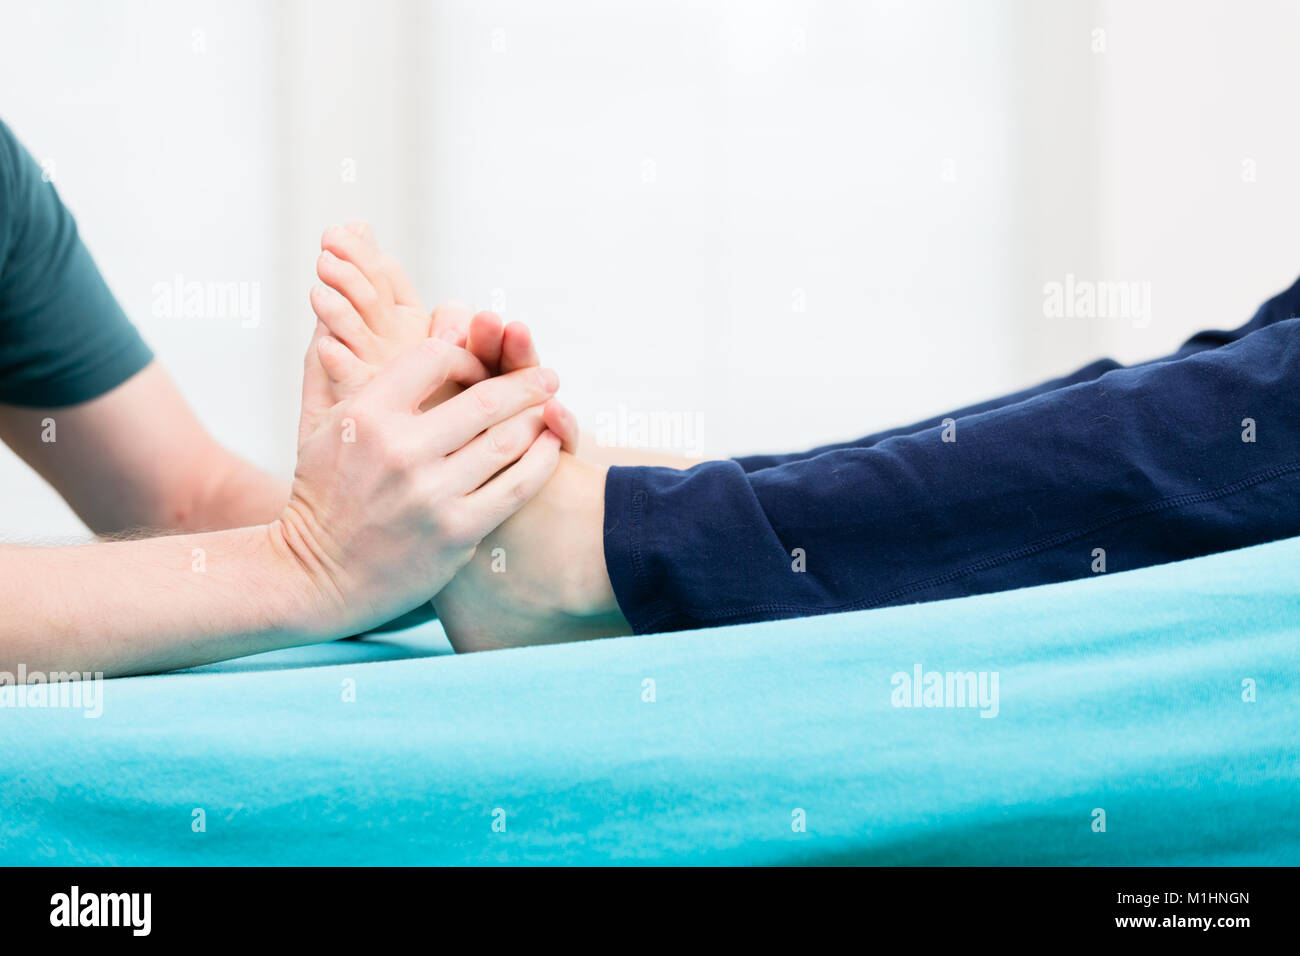 Patient having foot massage at physio - Stock Image